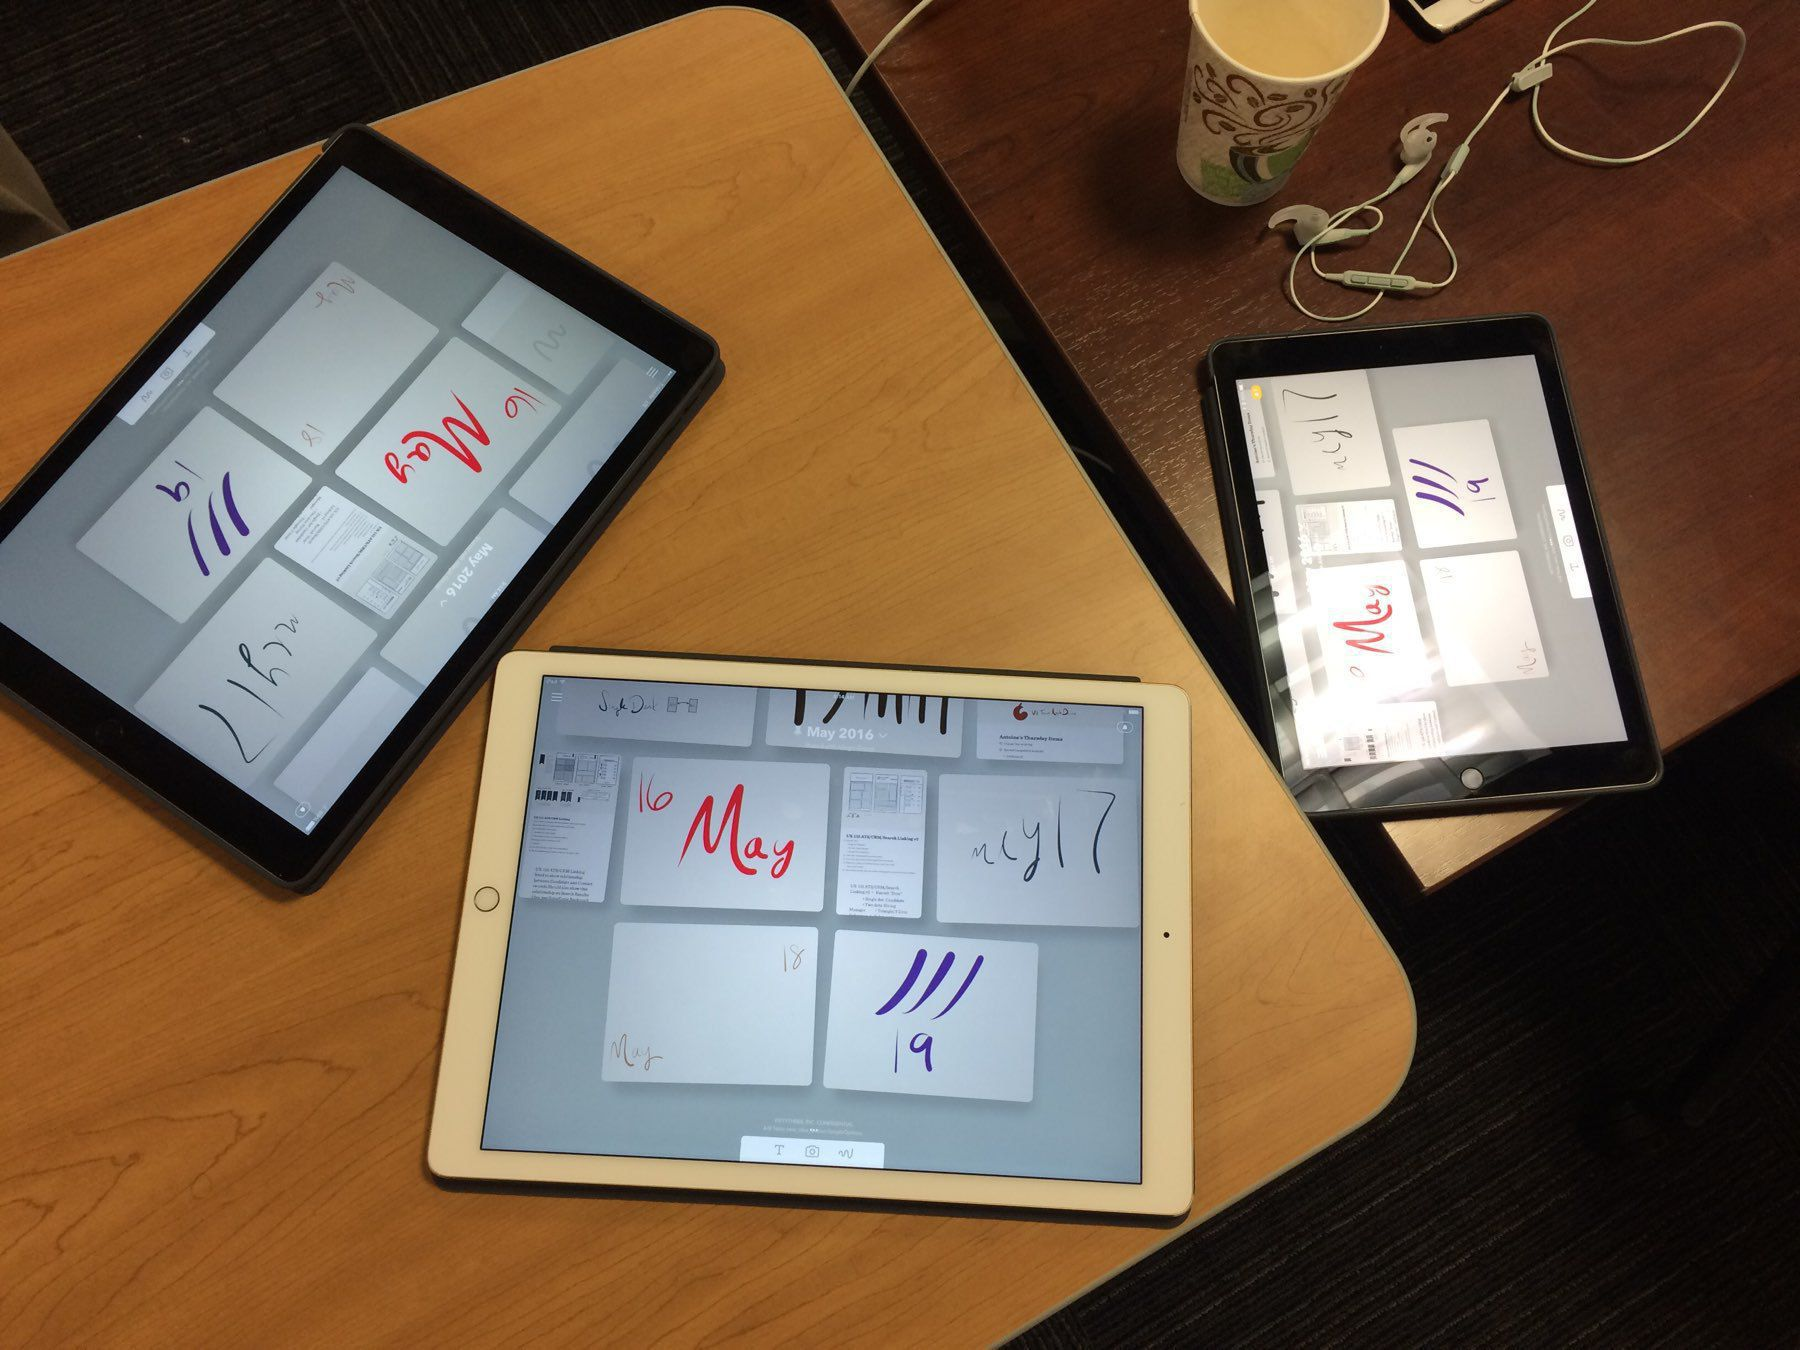 3 iPad devices in an experience design review session